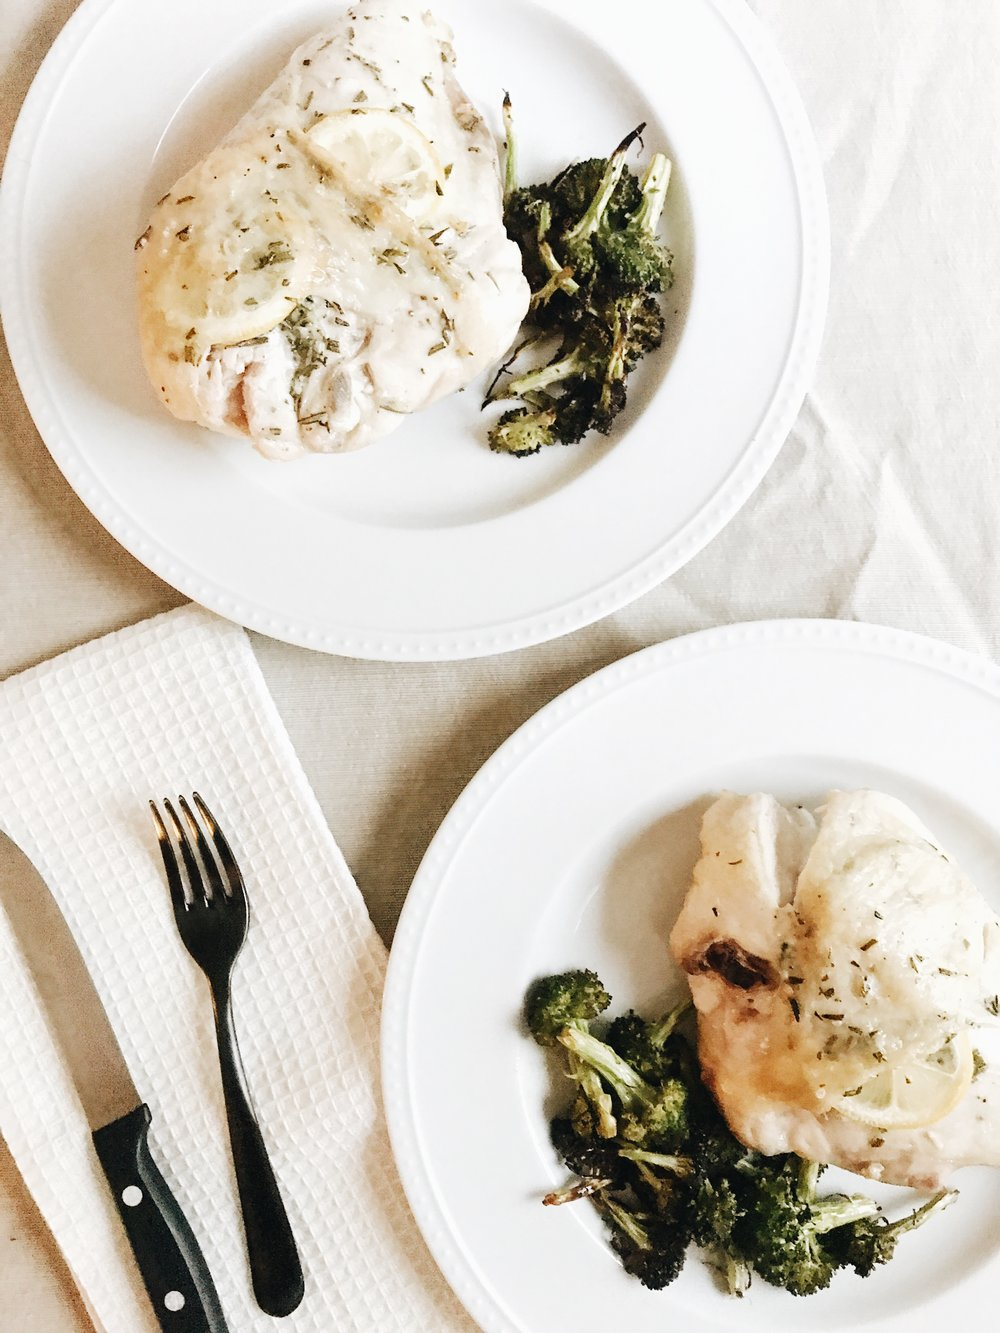 Food weeknight cooking for two blog kelly golia event planning food weeknight cooking for two july 10 2017 by kelly golia forumfinder Images